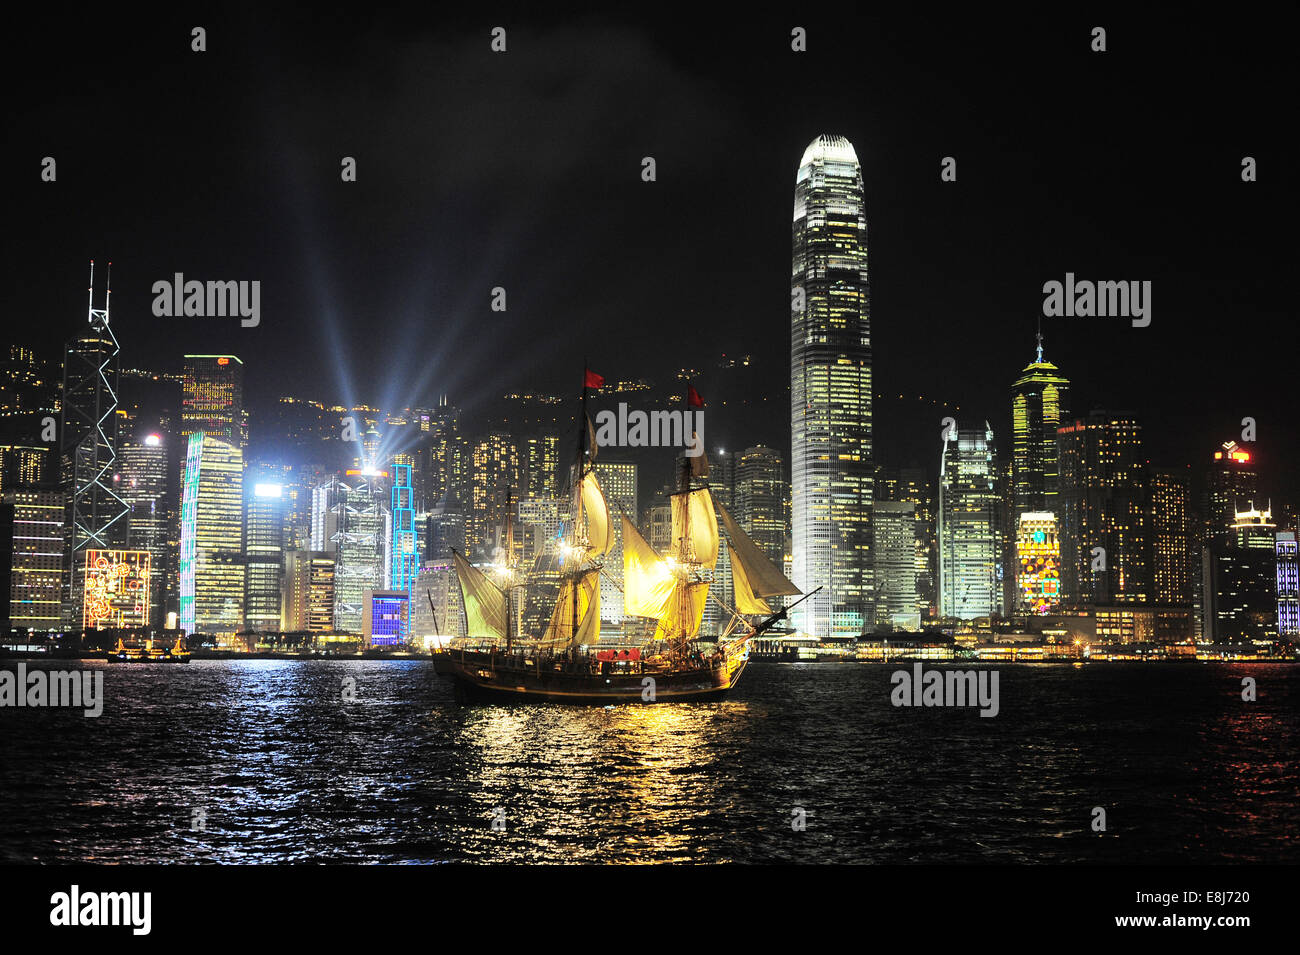 Victoria harbor with famous traditional Chinese junk at night. Hong Kong - Stock Image